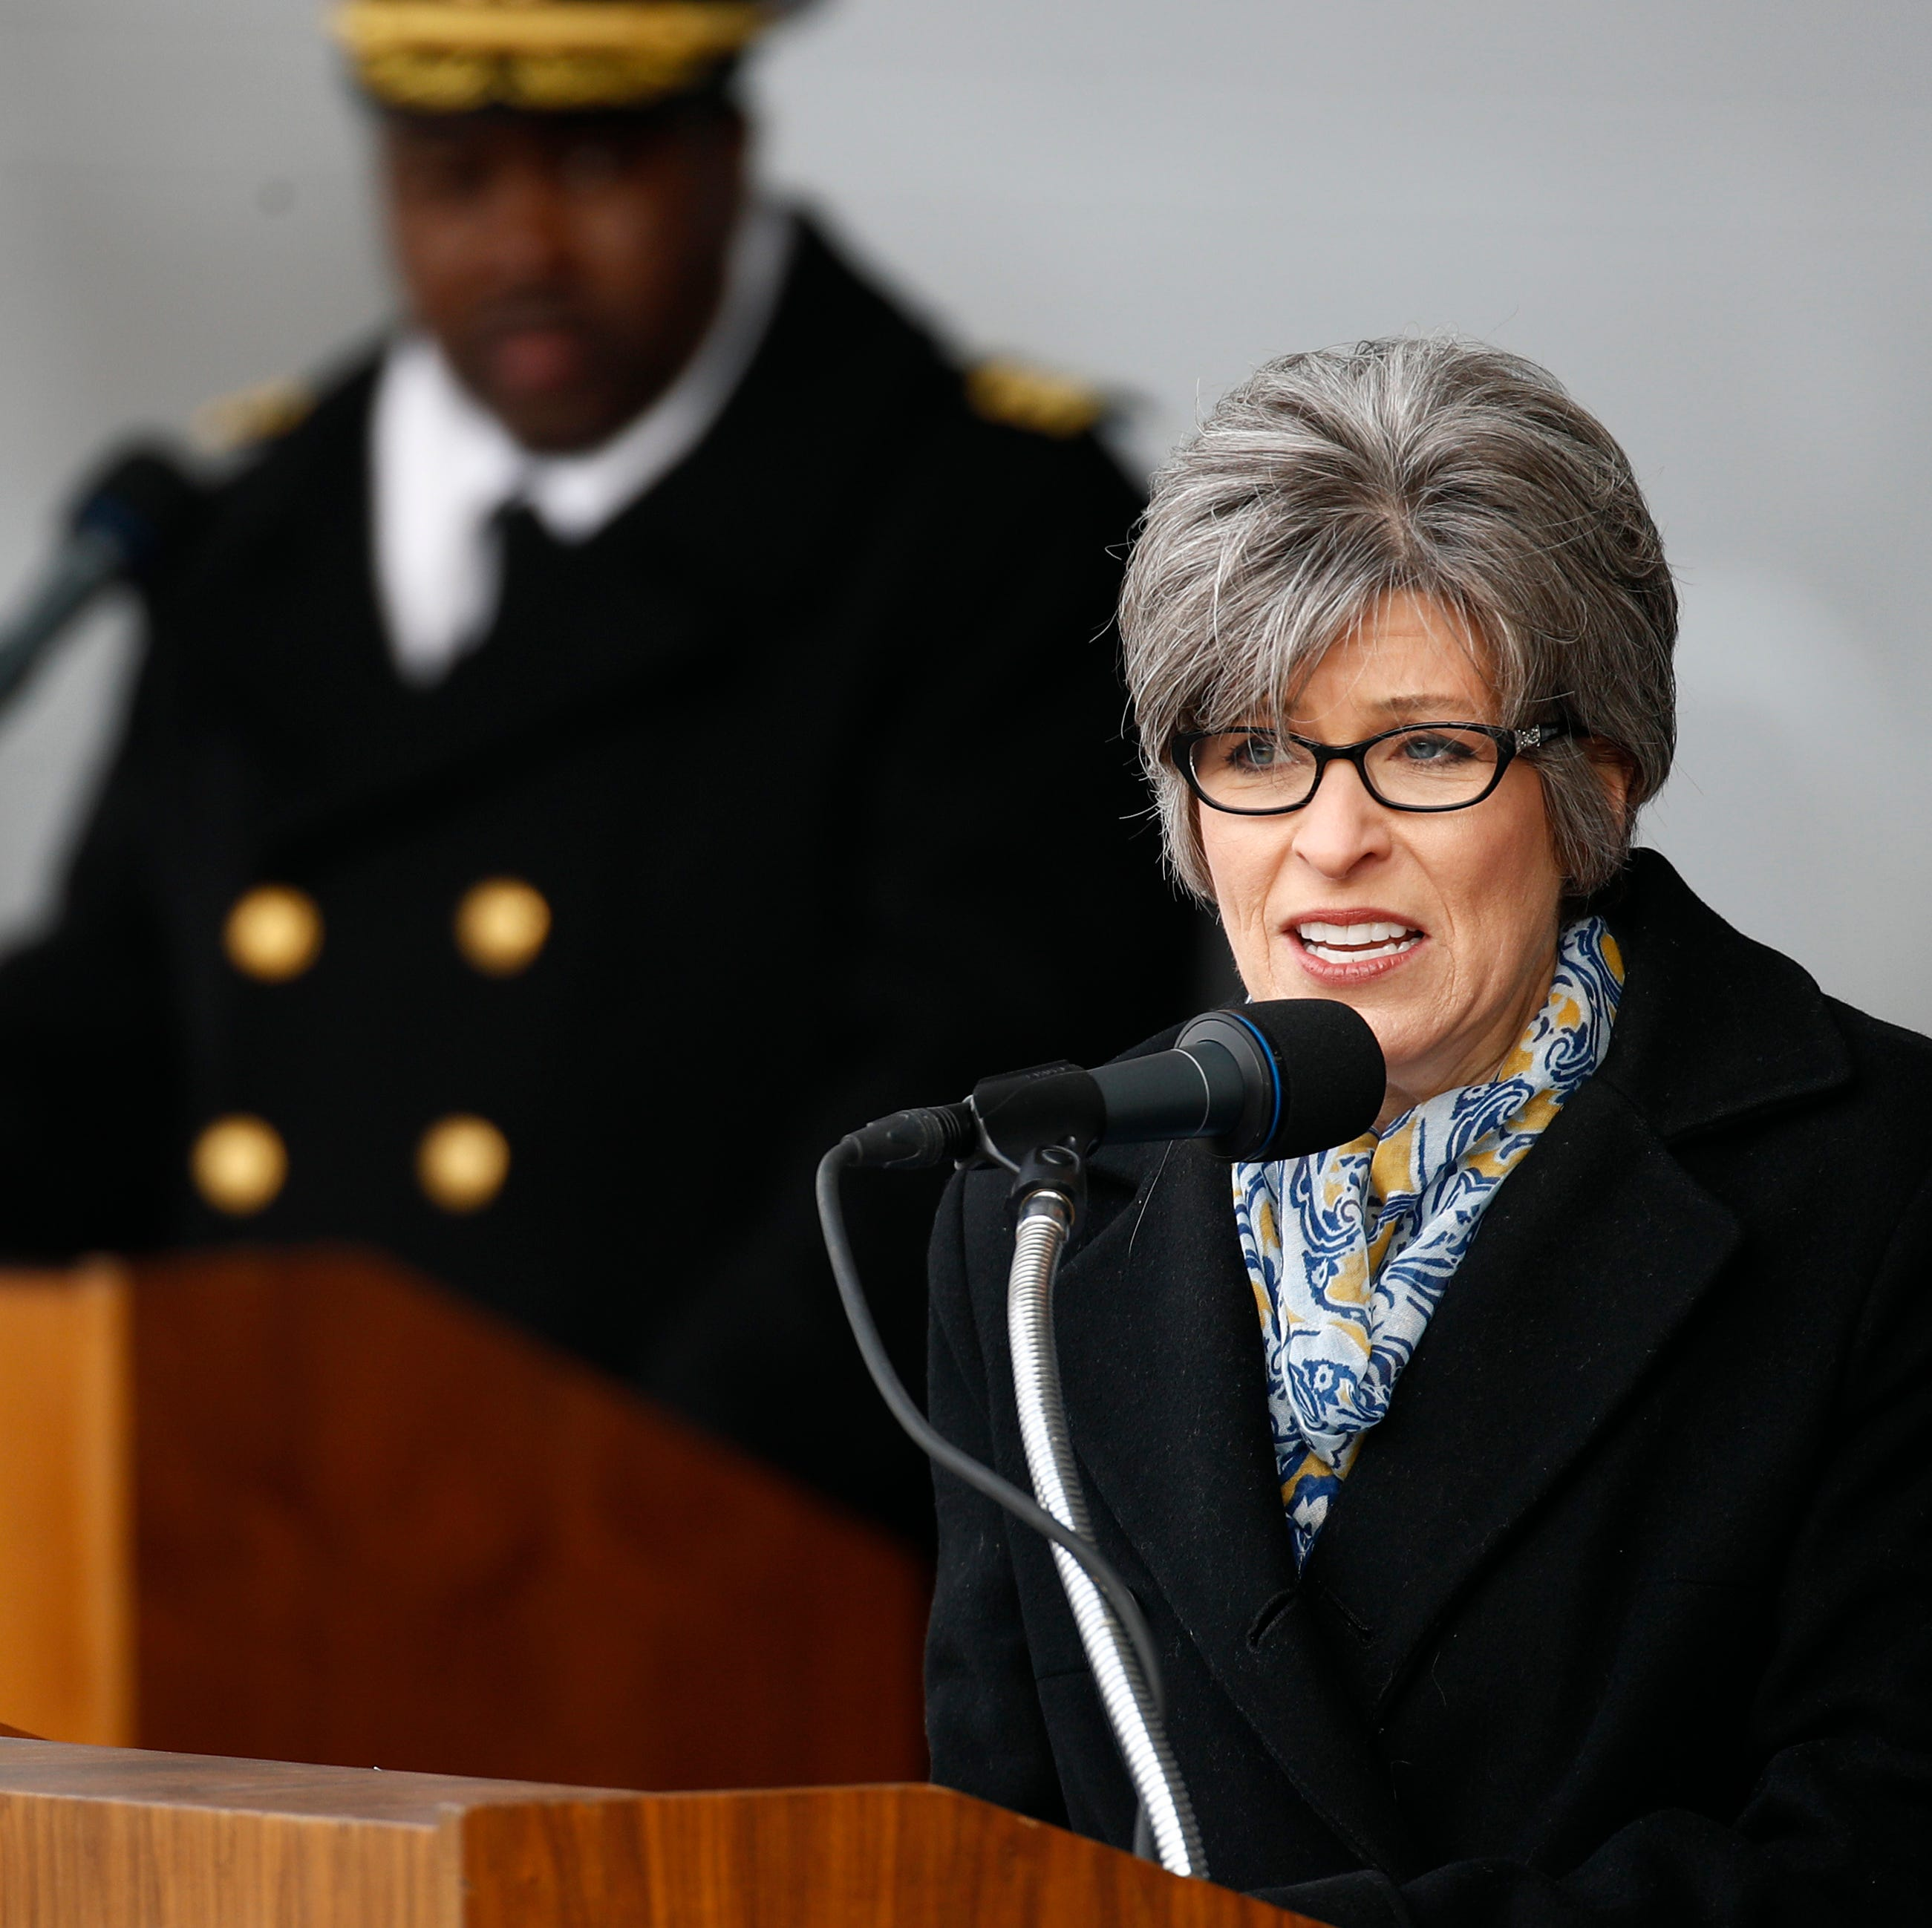 Sen. Joni Ernst, R-Iowa, speaks at the USS Sioux City's commissioning ceremony, Saturday, Nov. 17, 2018, at the U.S. Naval Academy in Annapolis, Md.